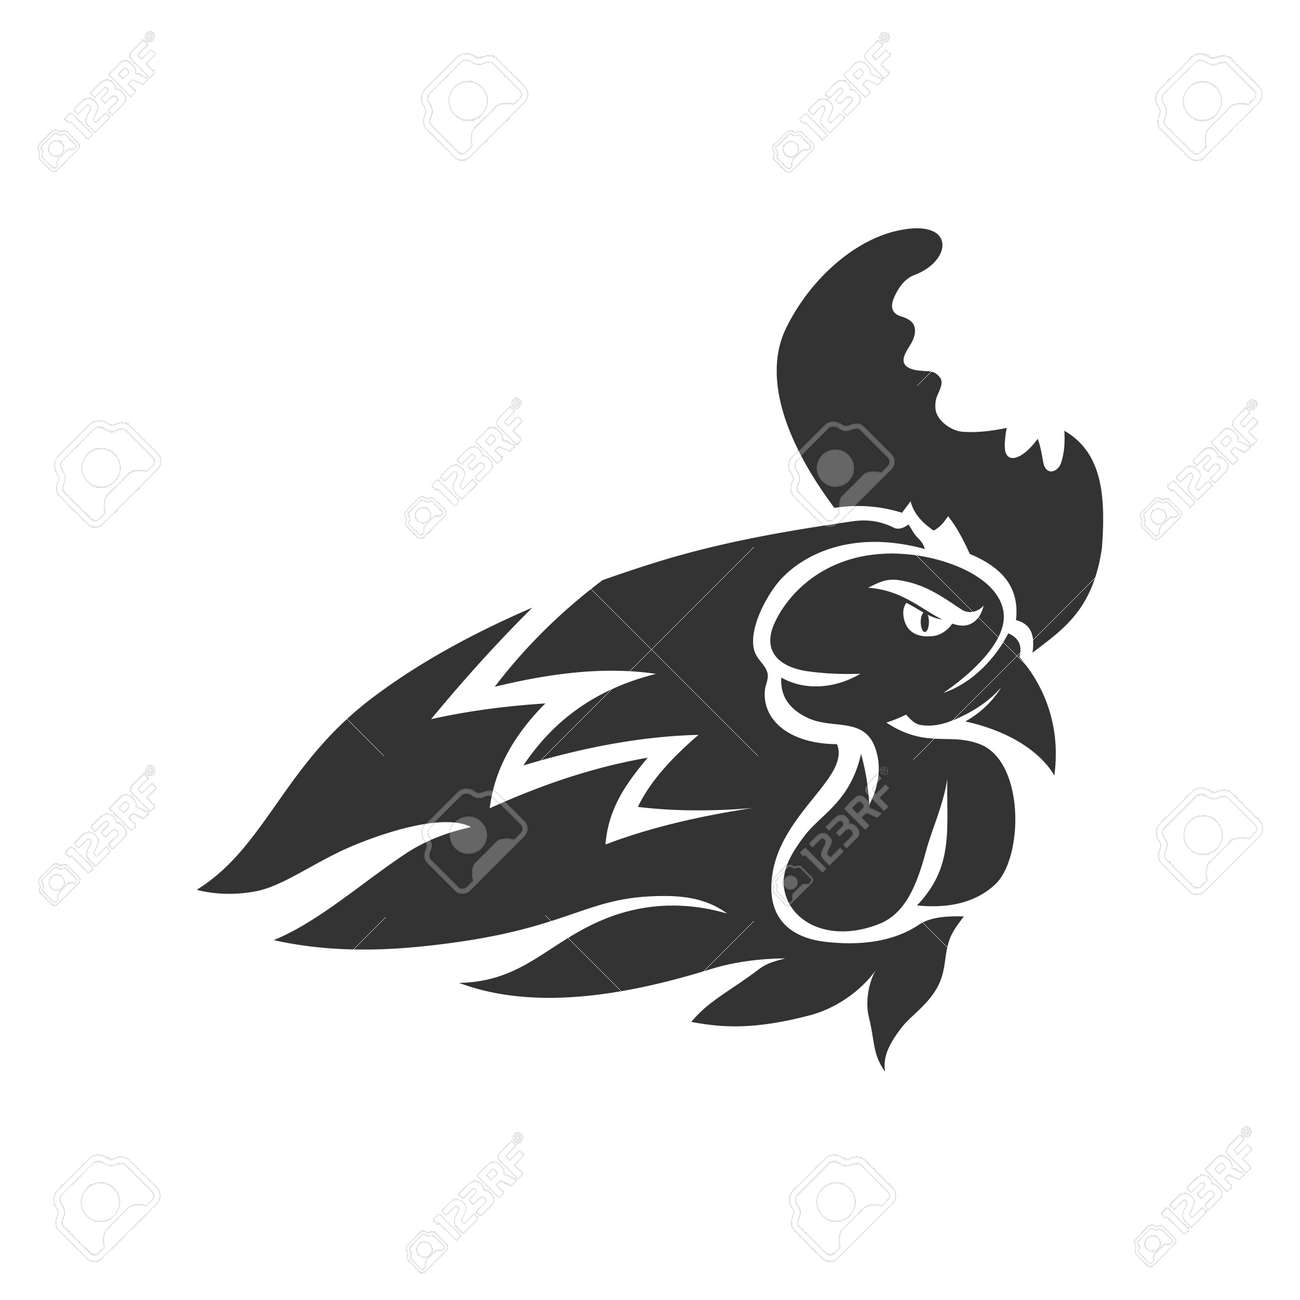 Chicken Rooster Head Mascot Animal Template Silhouette Isolated - 169326699